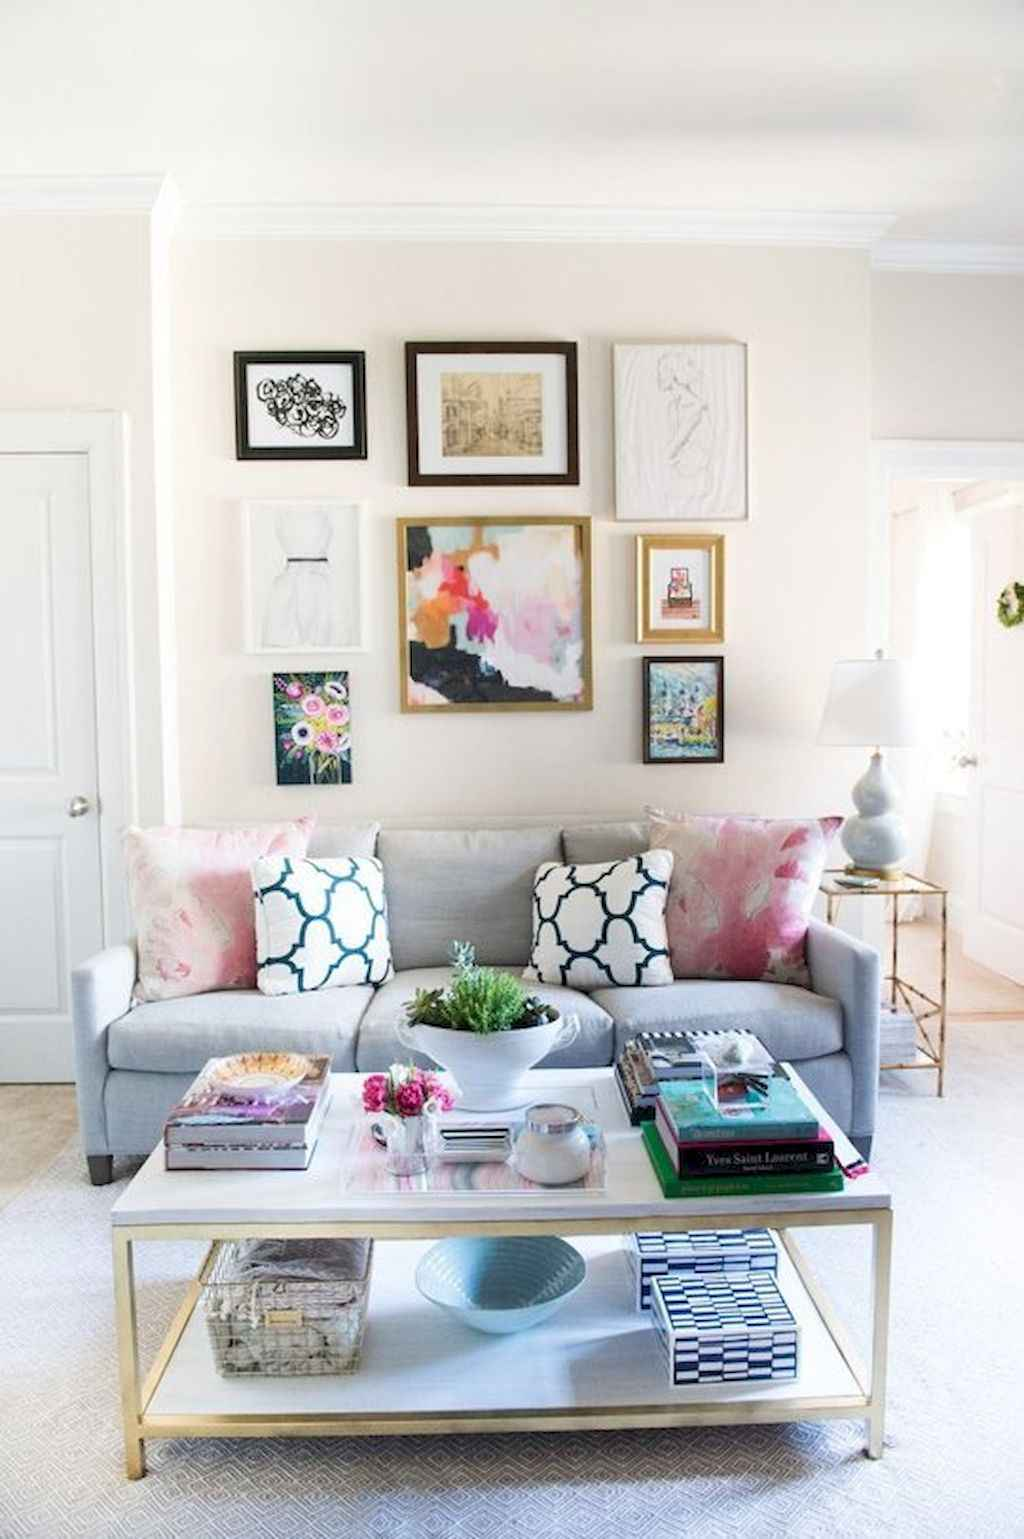 Couples first apartment decorating ideas (23)